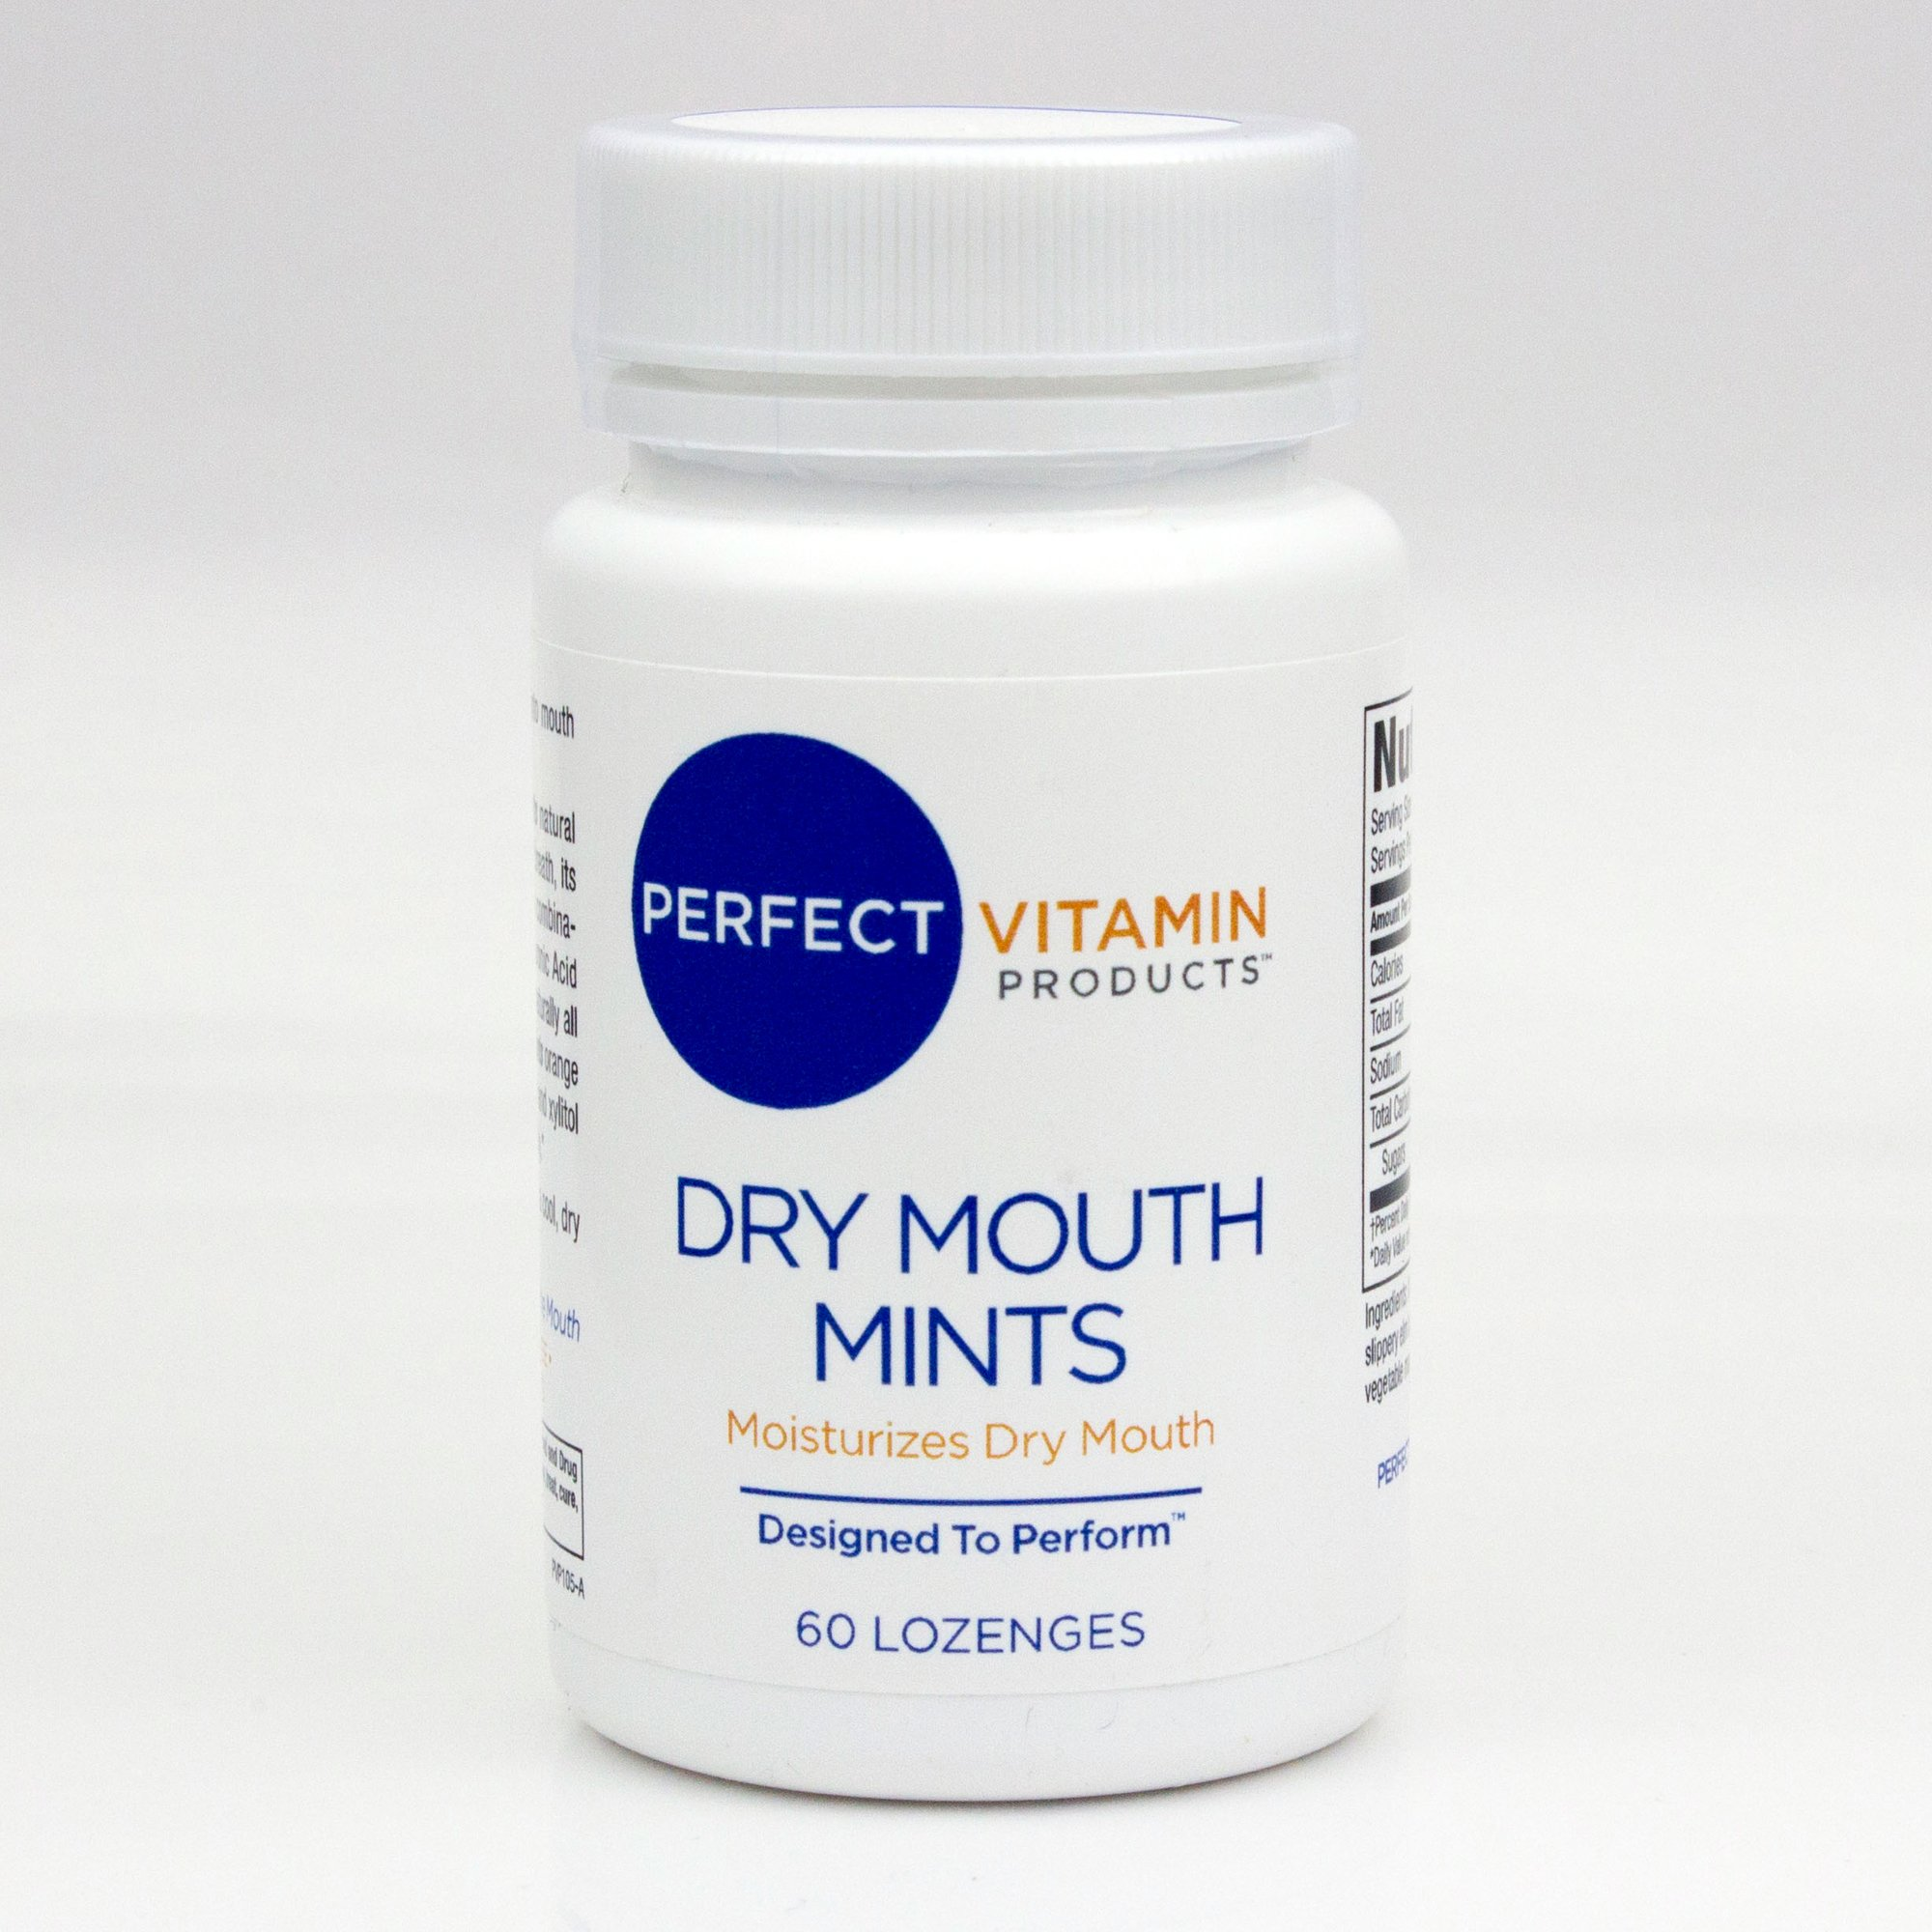 Dry Mouth Mints - stimulates saliva production for a dry mouth